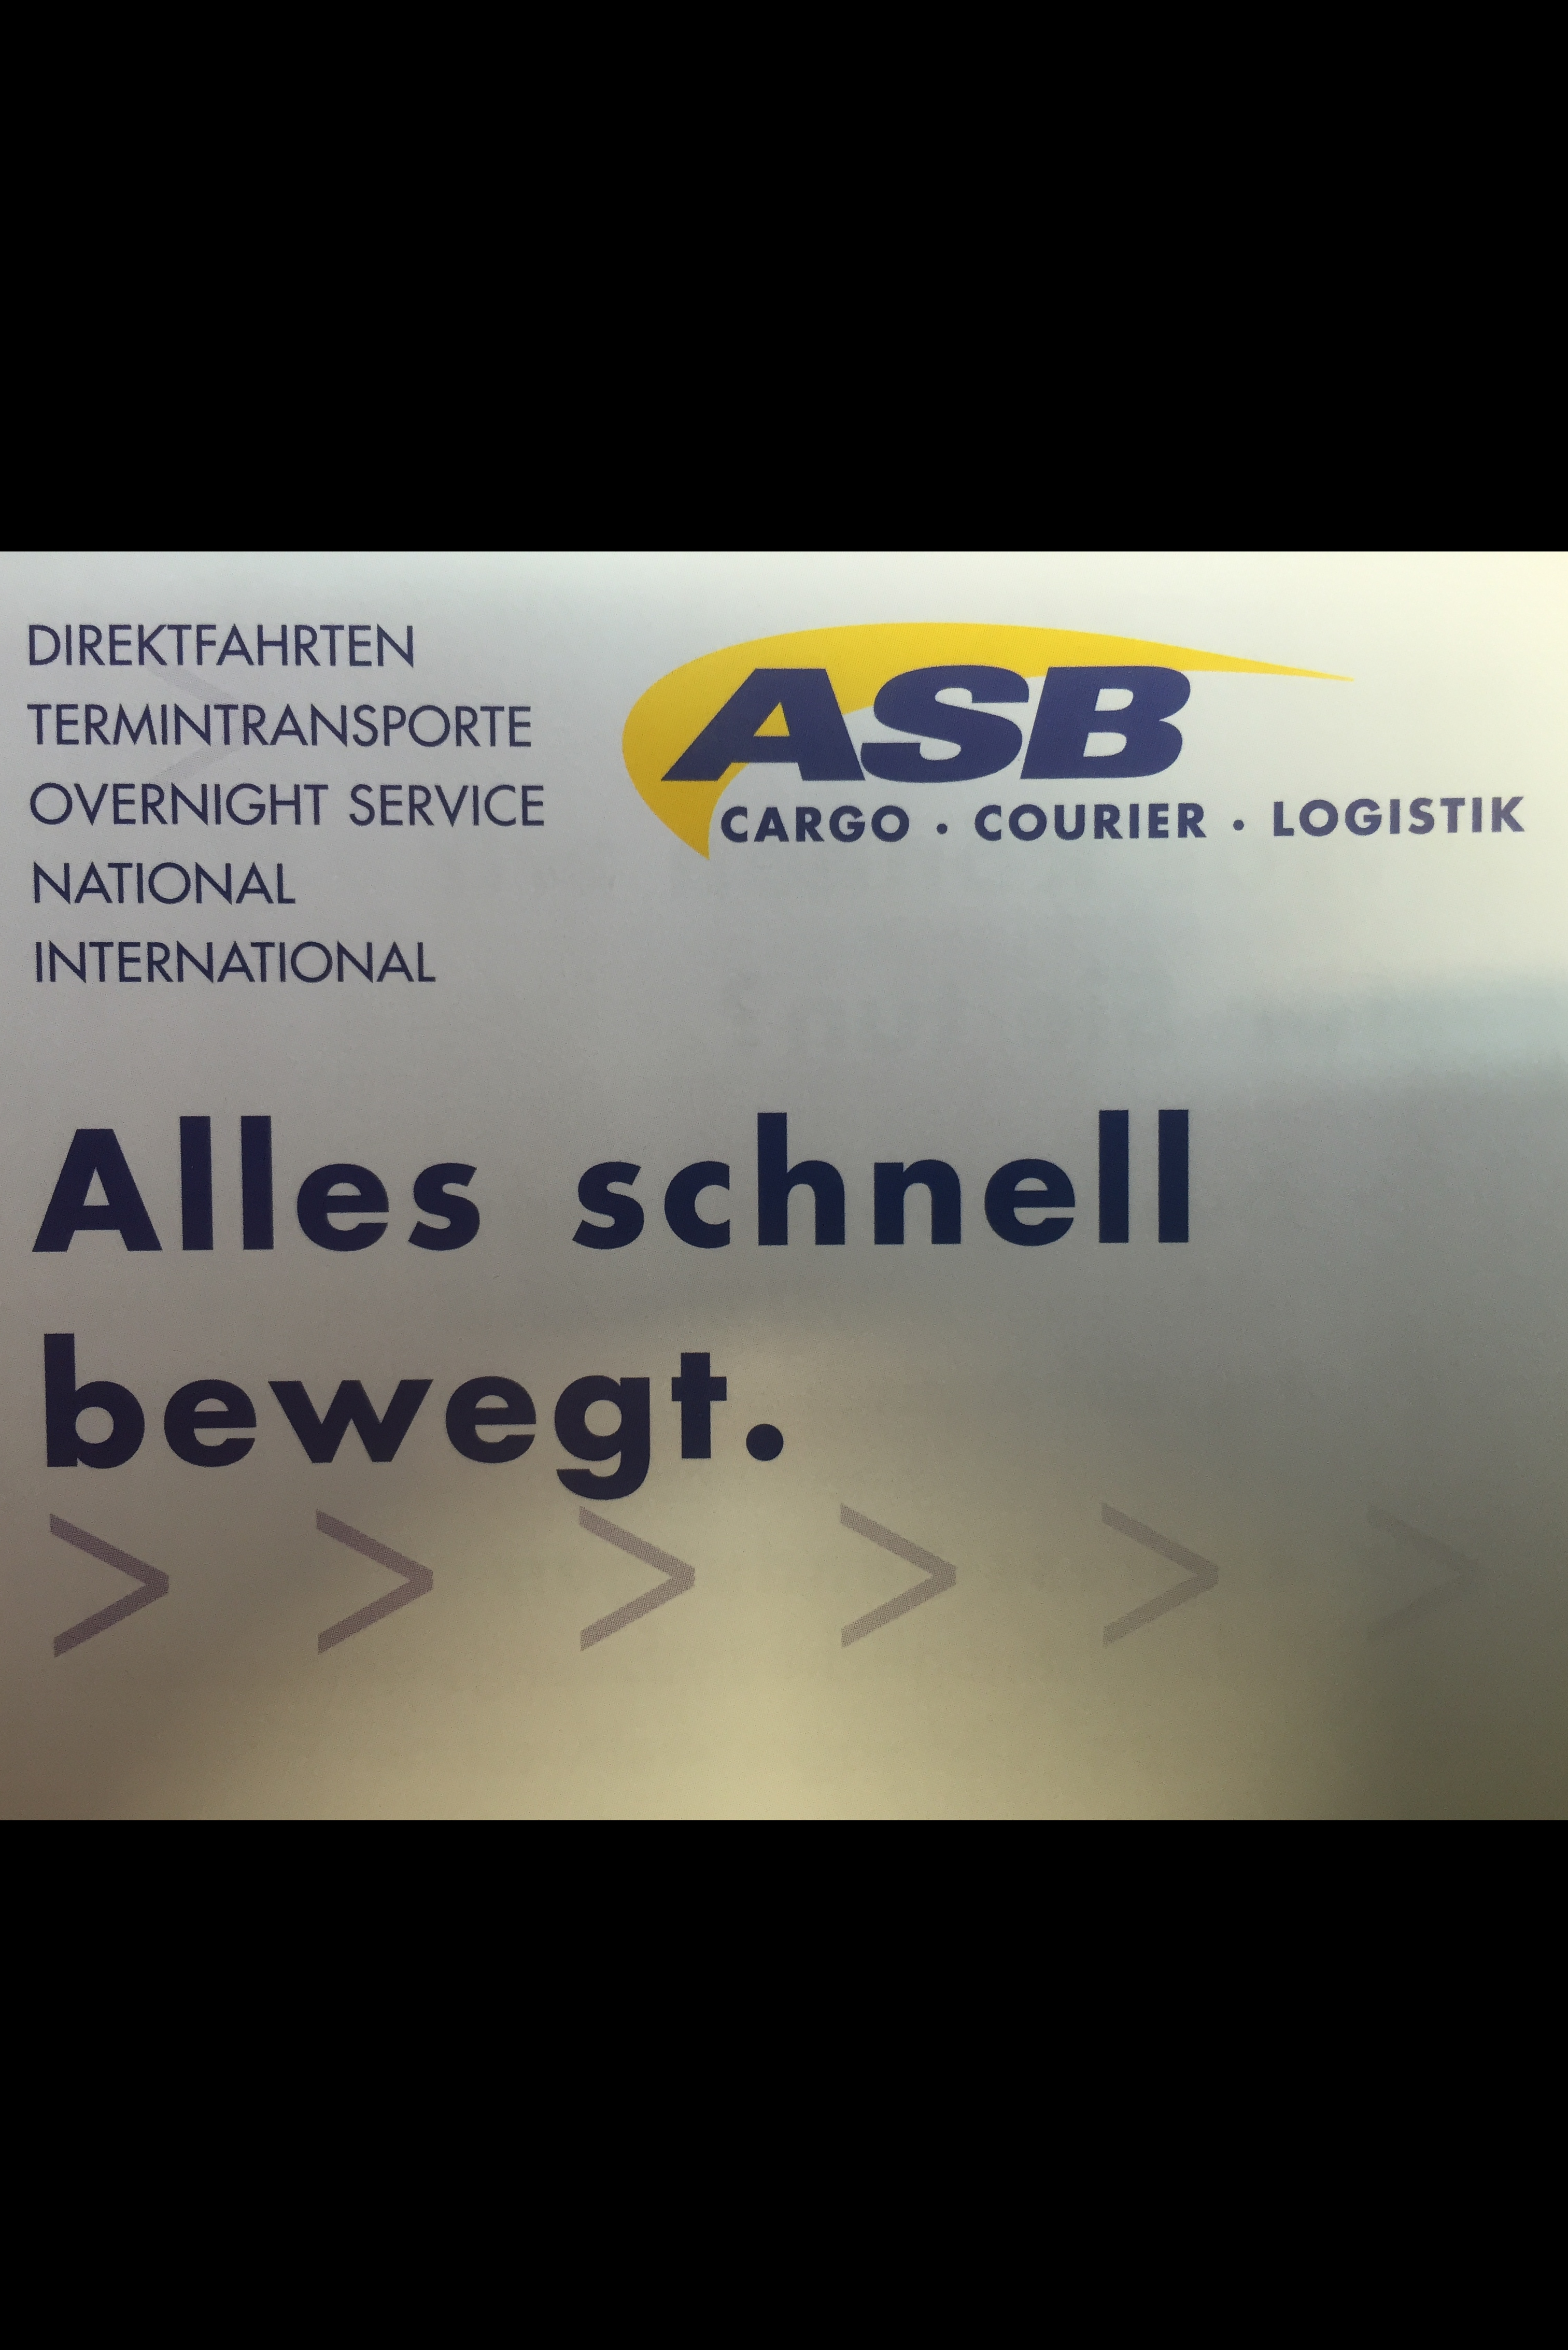 ASB Cargo Courier Logistik